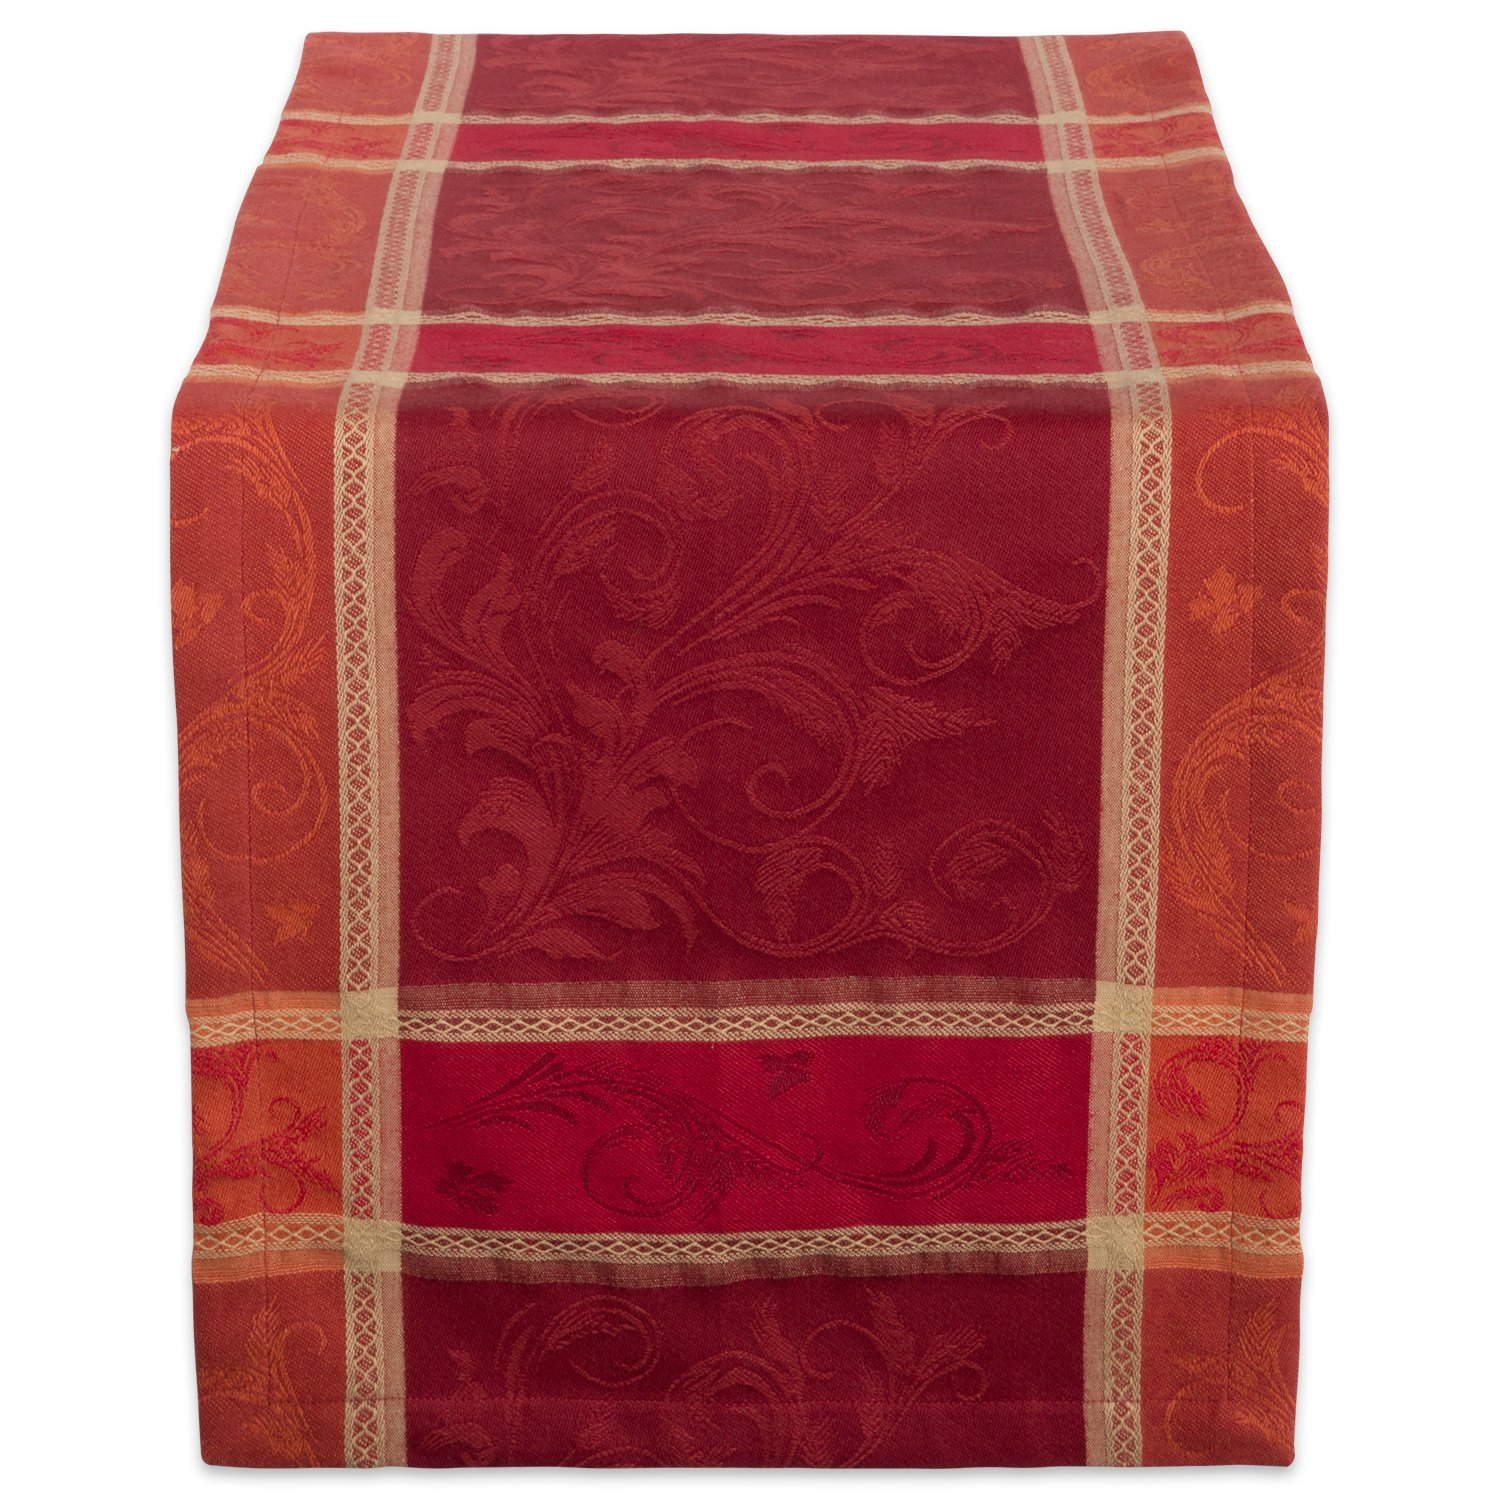 DII 14x72'' Cotton Table Runner, Harvest Wheat - Perfect for Fall, Thanksgiving, Catering Events, Dinner Parties, Special Occasions or Seasonal Décor